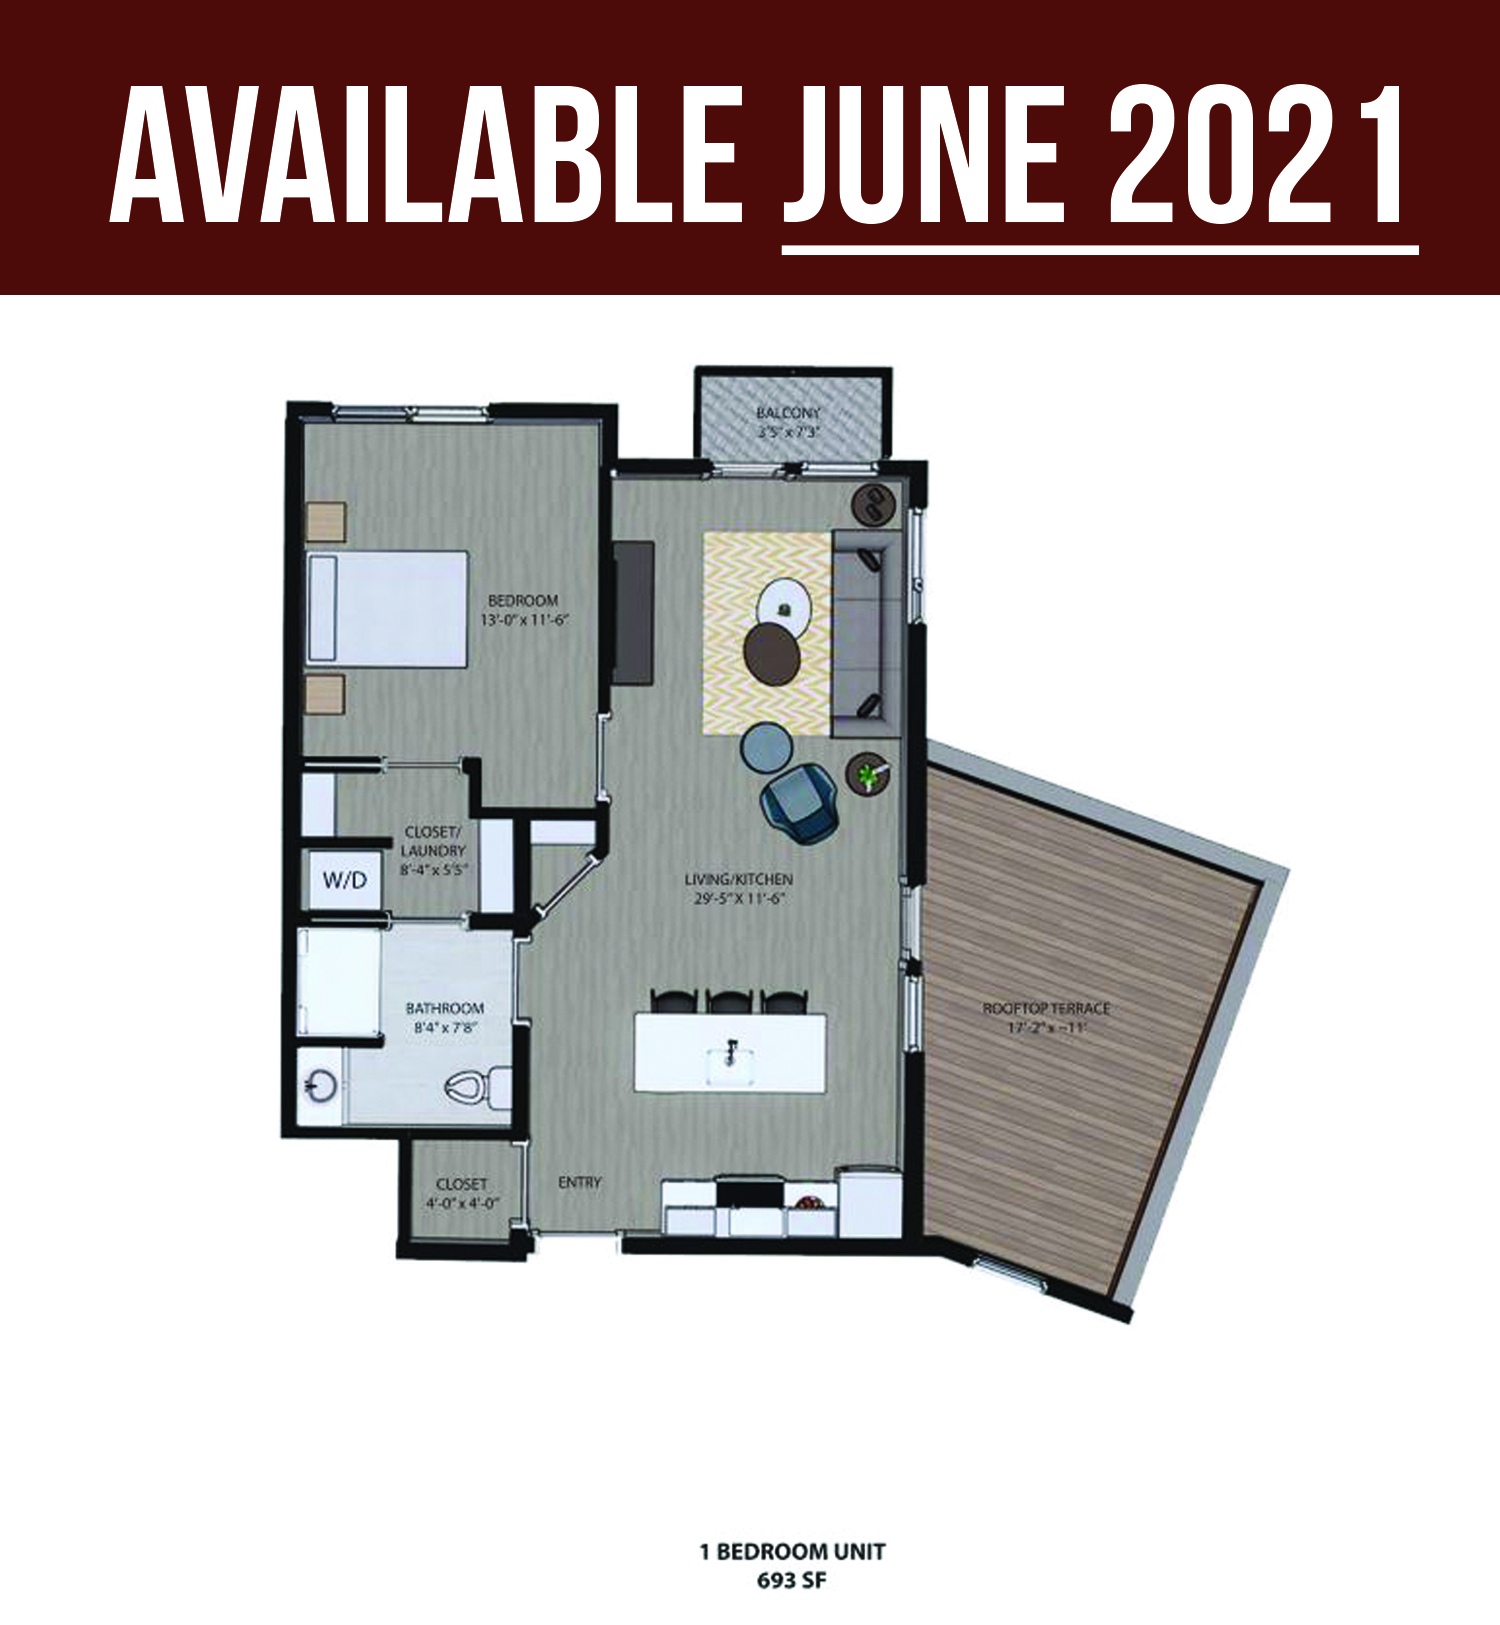 Floorplan - One Bedroom with Roof Deck (A) image